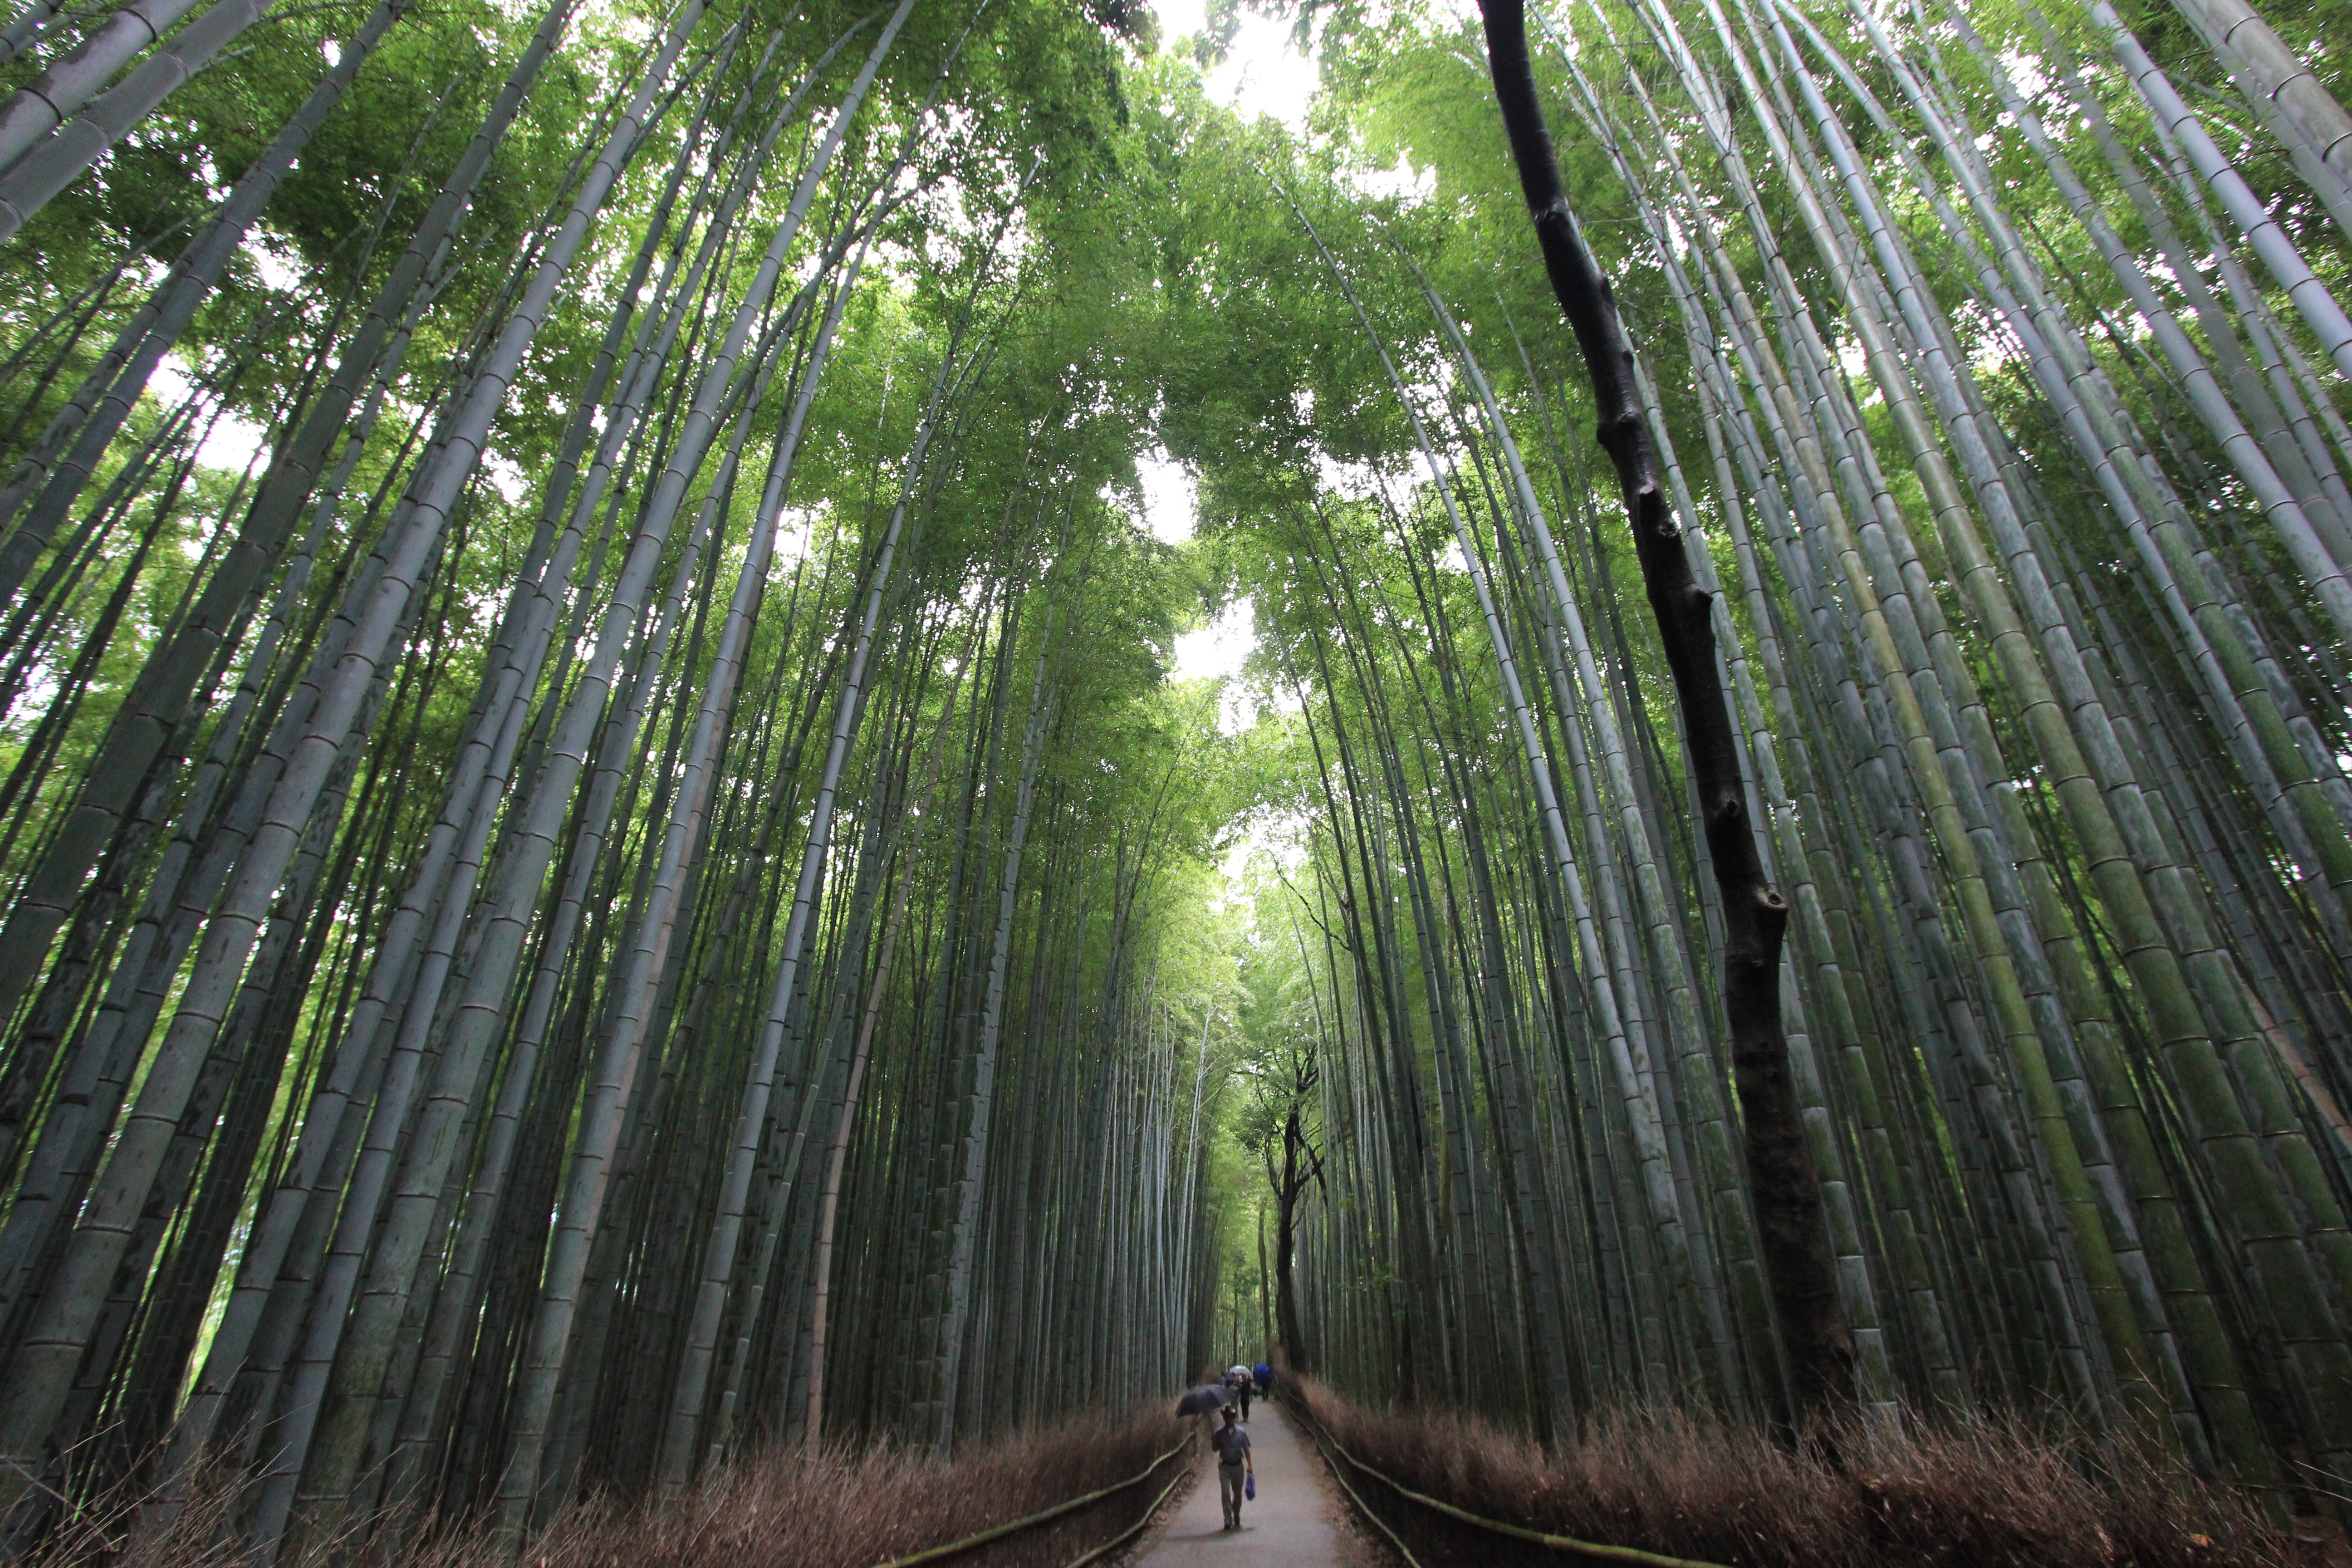 Bamboo Forest Wallpapers High Quality Download Free